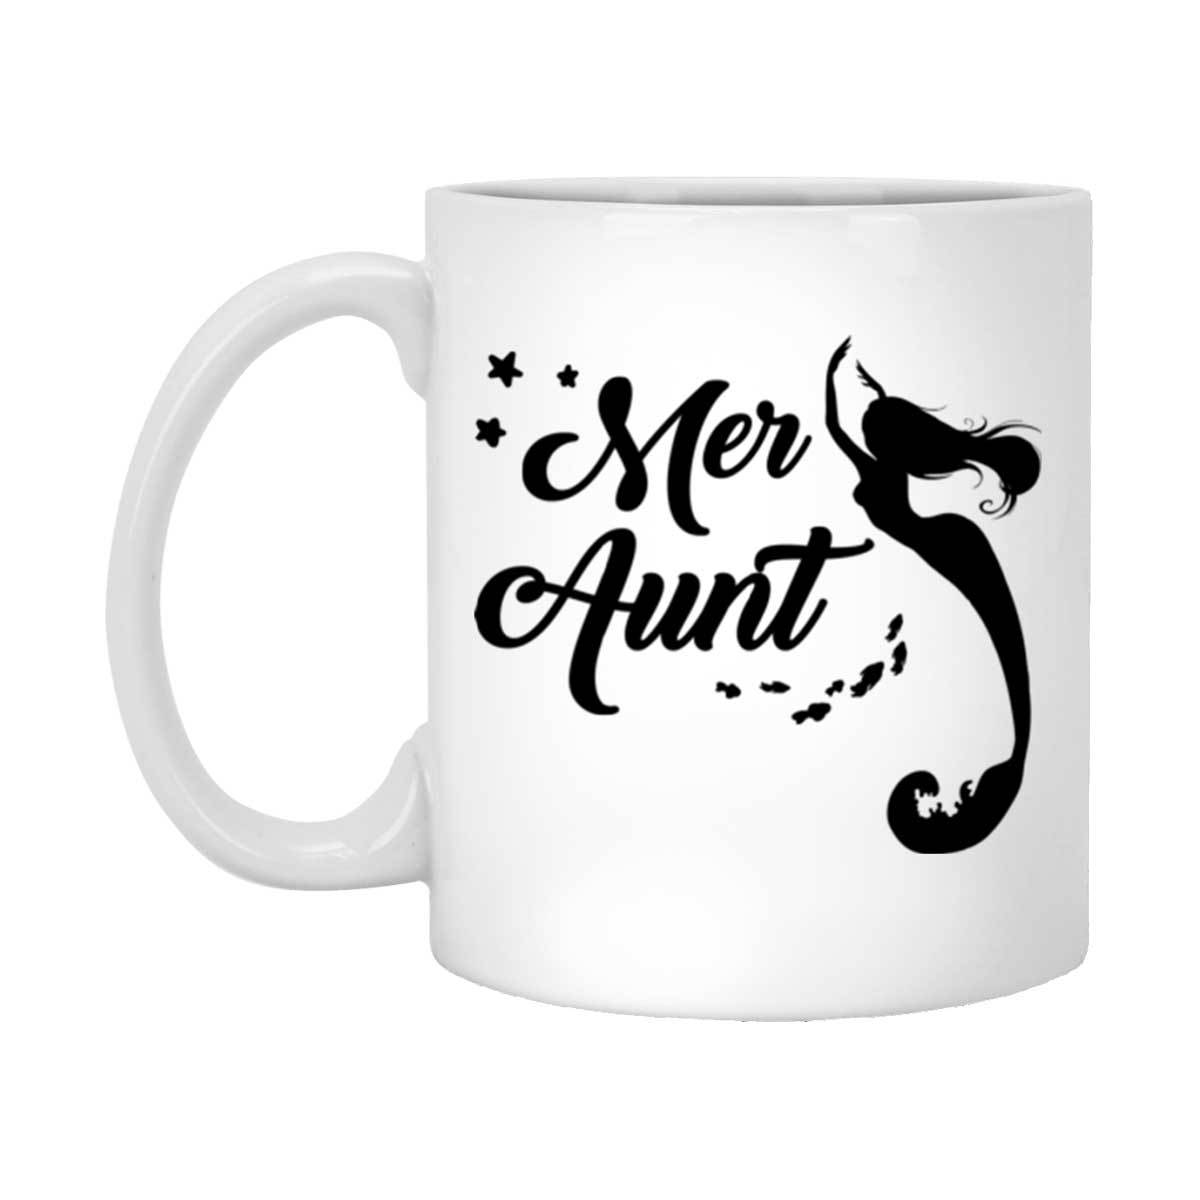 Mer Aunt White Mug Mermaid Drinkware 11 oz